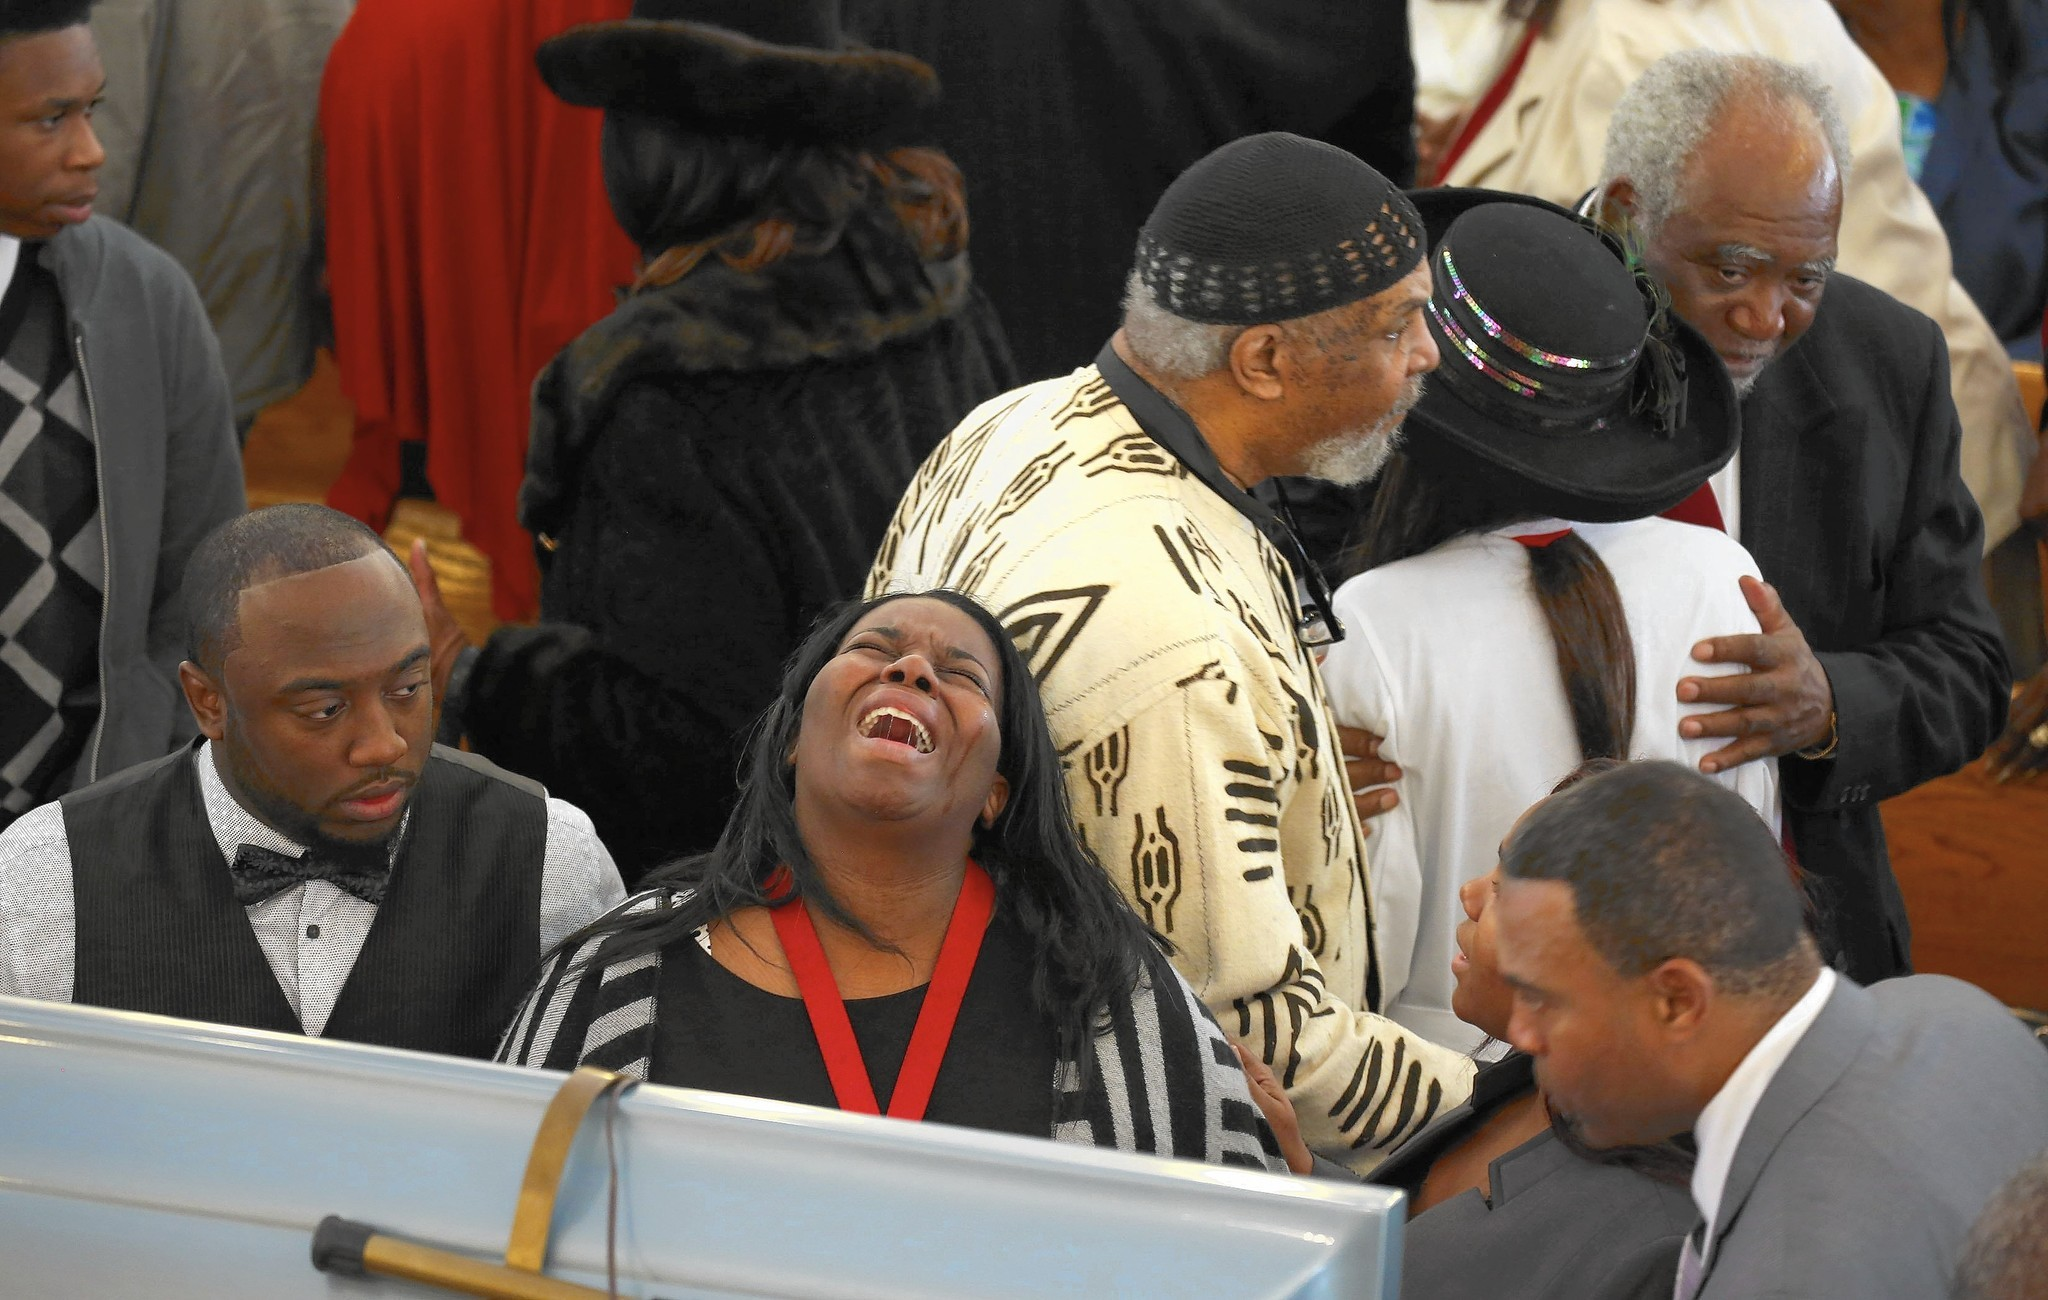 At Funeral, Pastor Says Shooting Death Of Rep. Danny Davis' Grandson 'a Clarion Call'